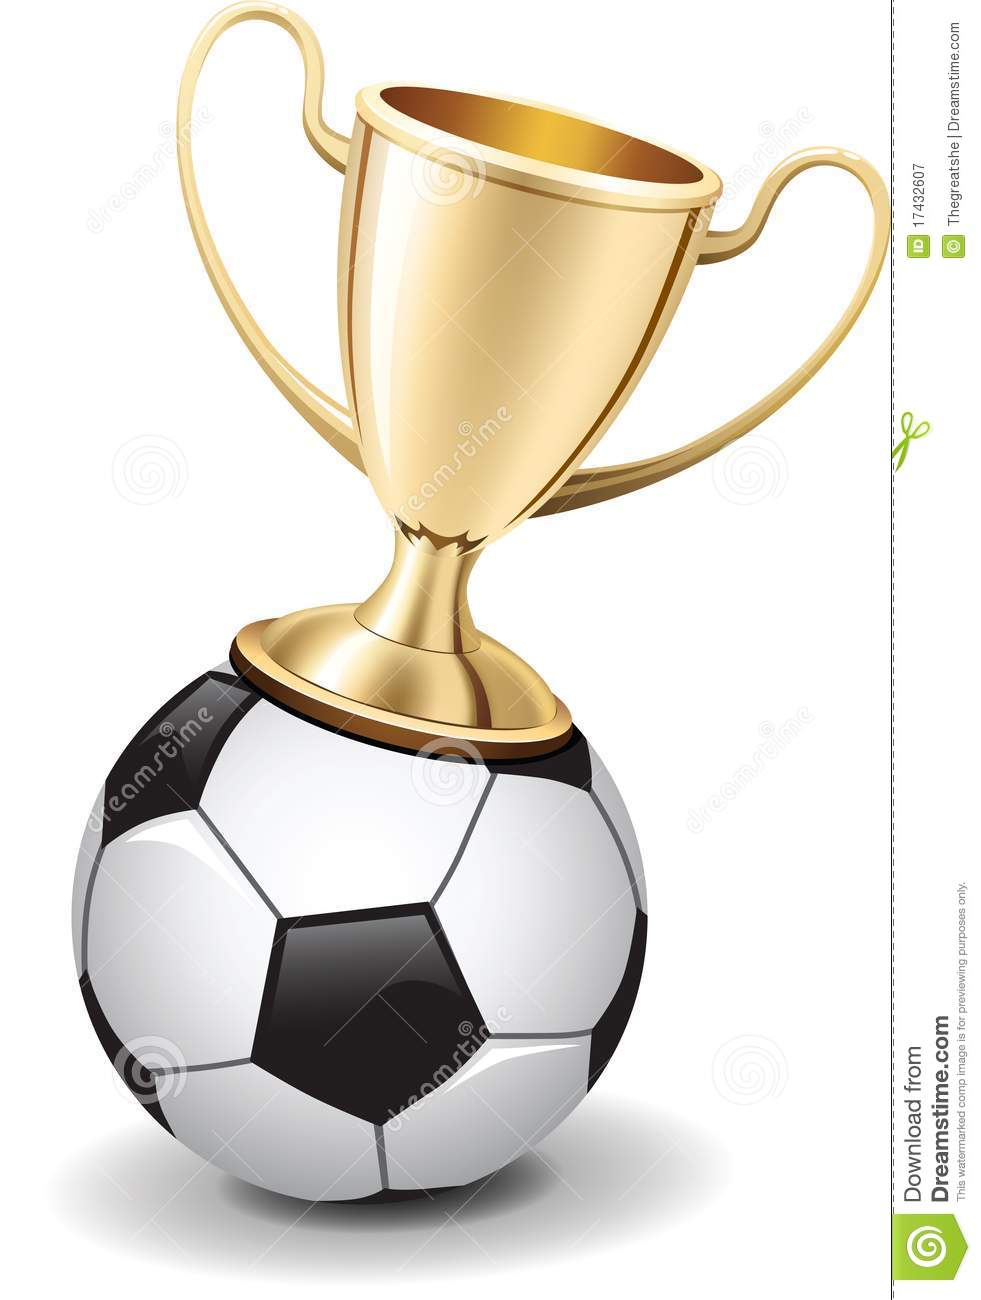 Gold Shiny Trophy Cup On Top Of Soccer Ball Royalty Free Stock ...